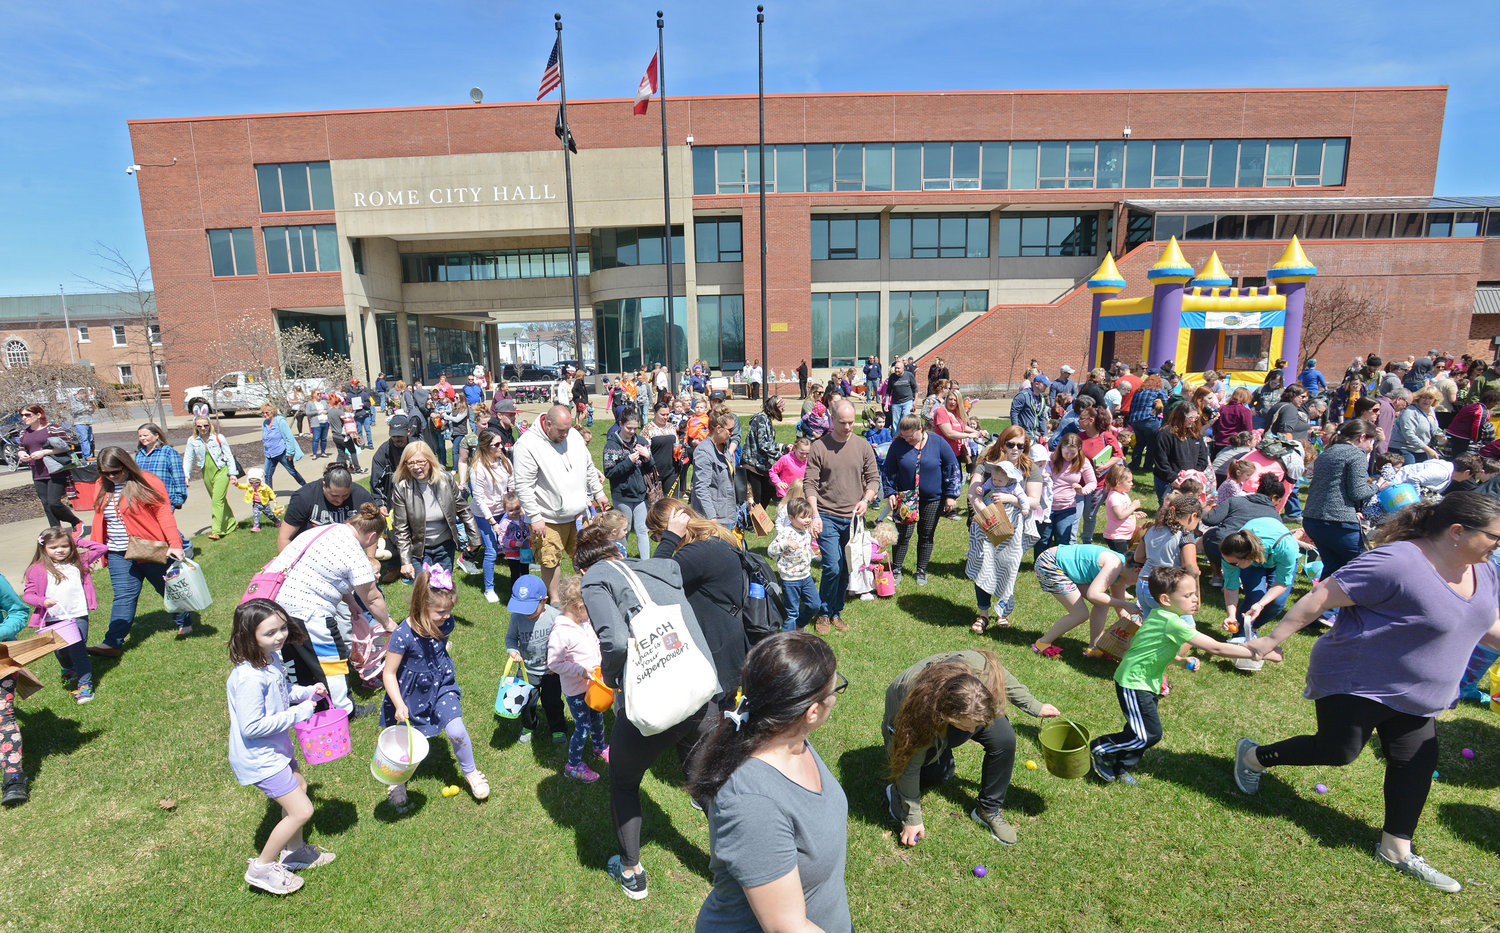 SCRAMBLE — Kids and families scrambled to hunt for eggs on the Griffo Green at the City Hall Easter Egg Hunt on Wednesday afternoon. Some 4,000 eggs were hidden throughout the green and surrounding area. More photos of the event on page 2.